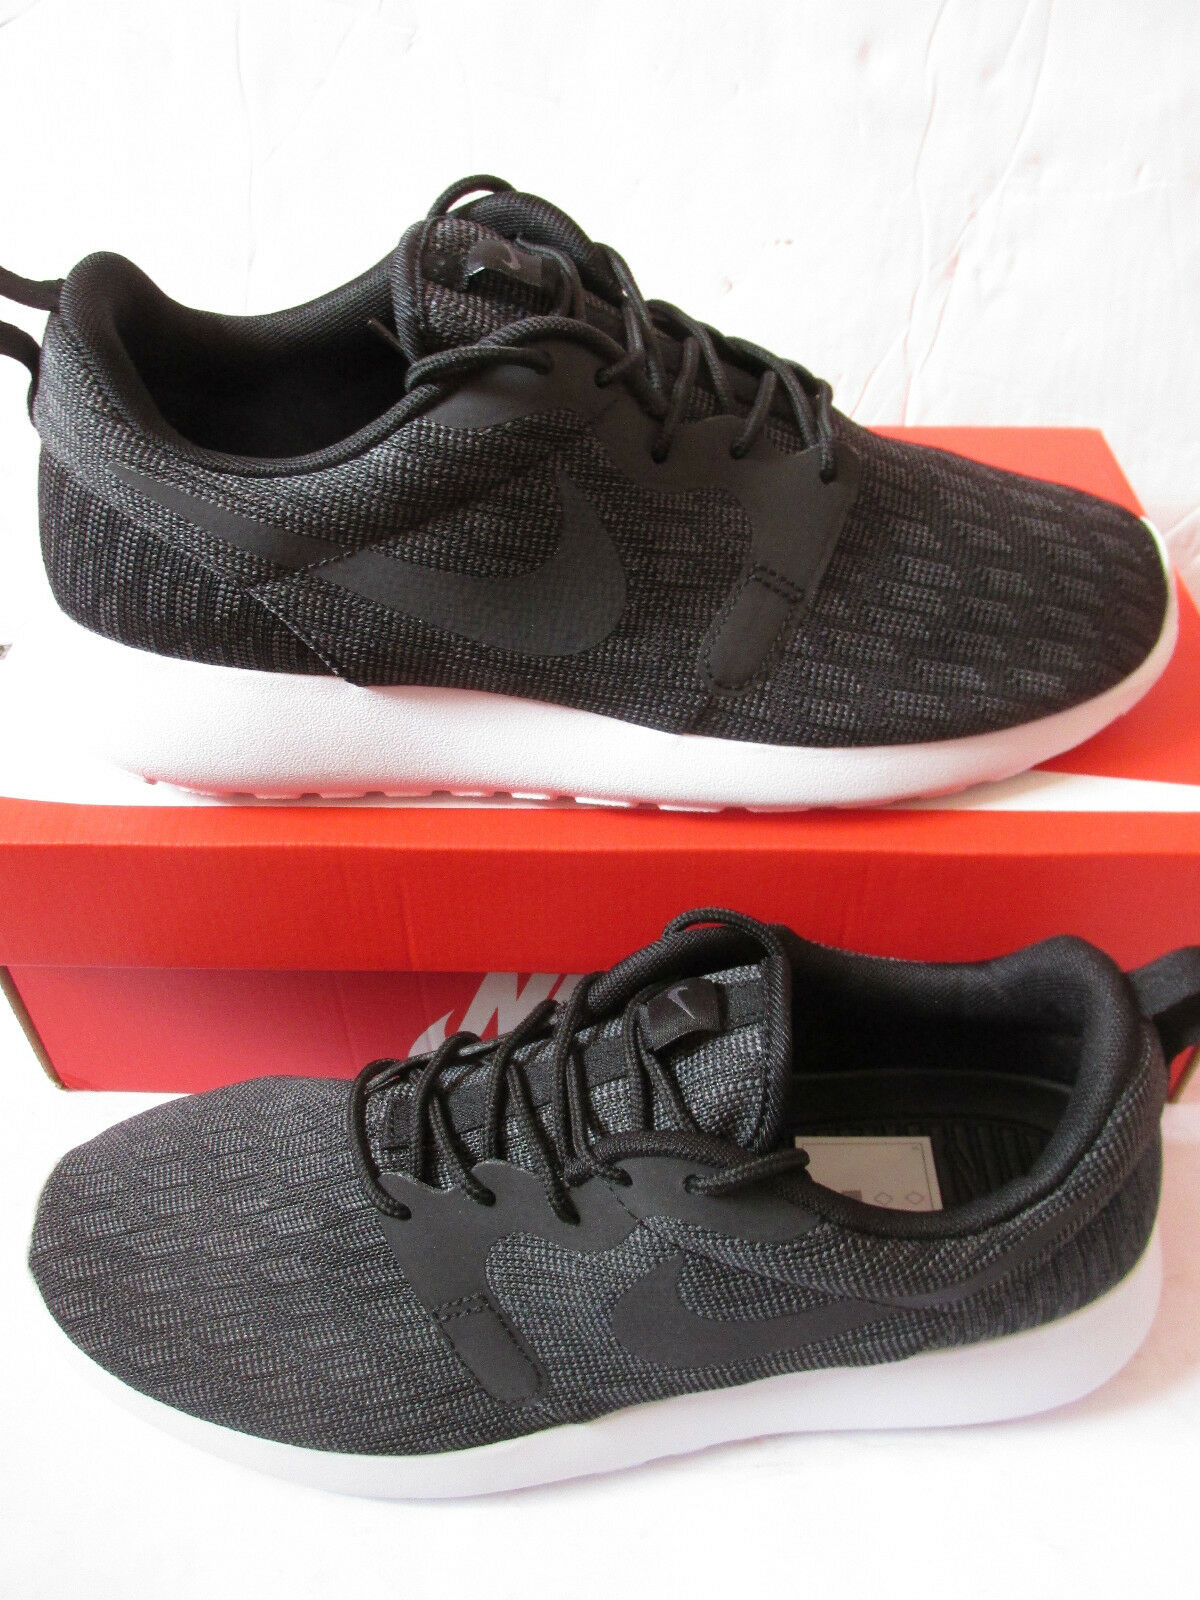 nike roshe one KJCRD mens running trainers 777429 001 sneakers shoes